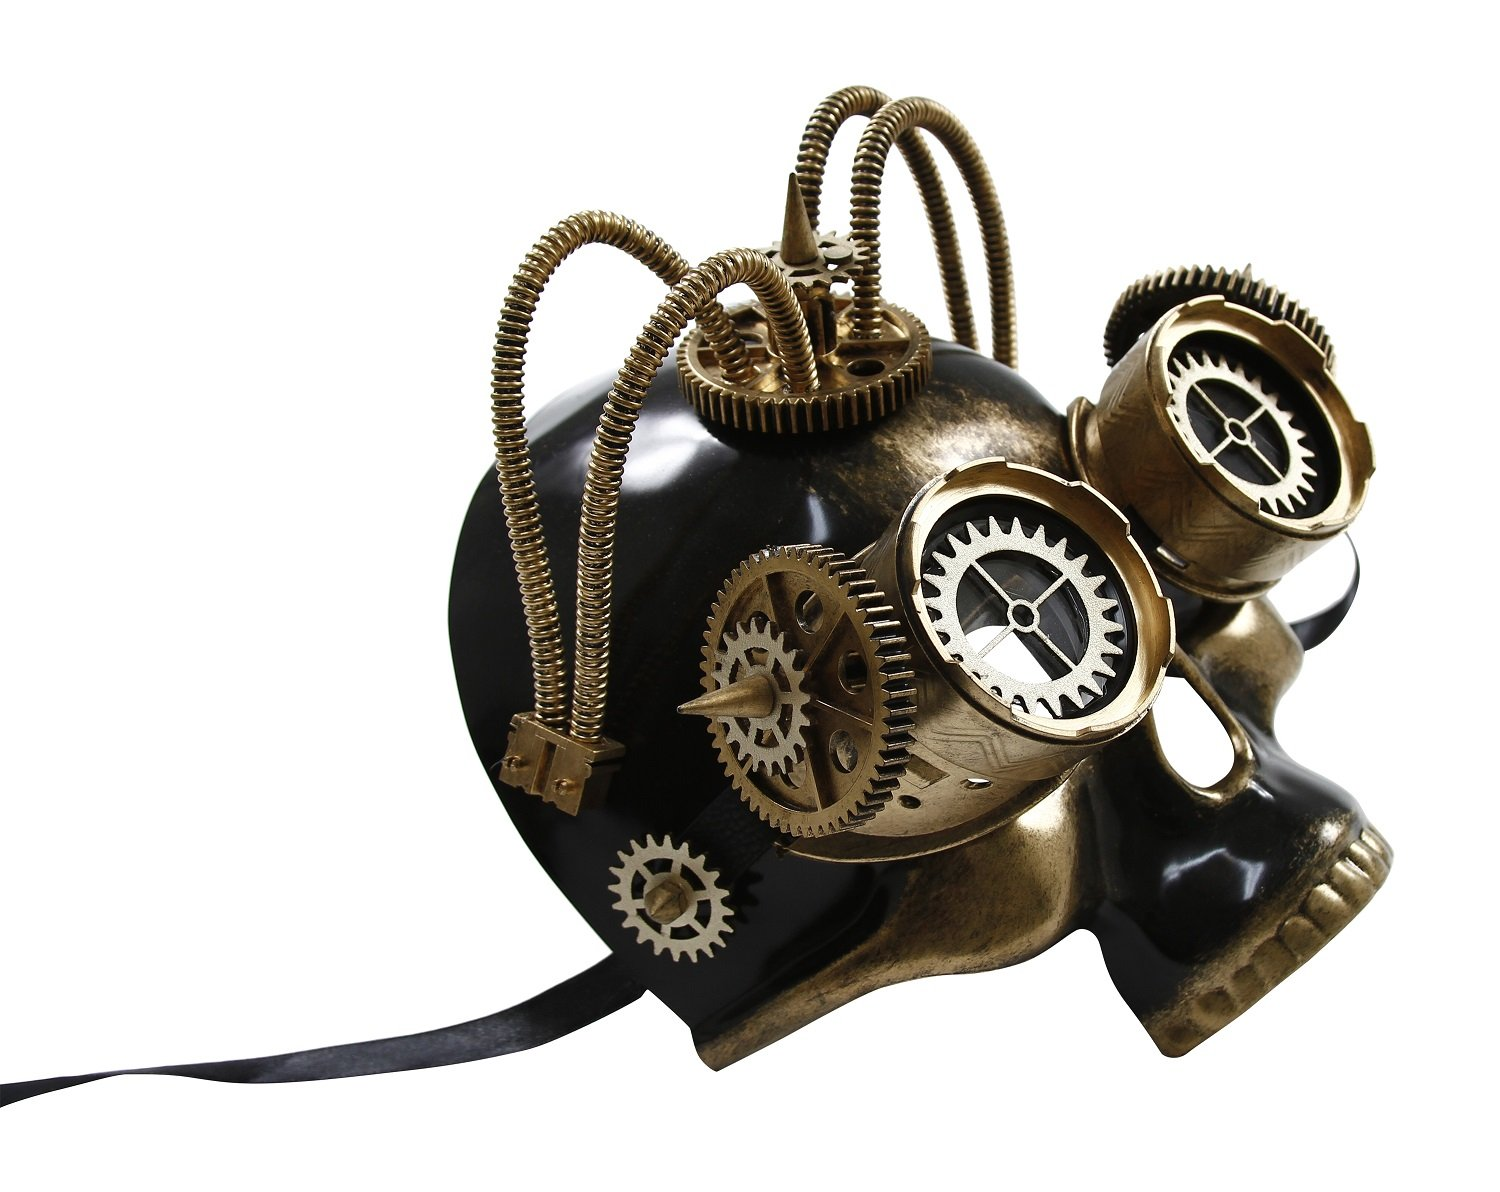 KAYSO INC The Astronomer II Steampunk Full Face Venetian Masquerade Mask (Vintage Gold)